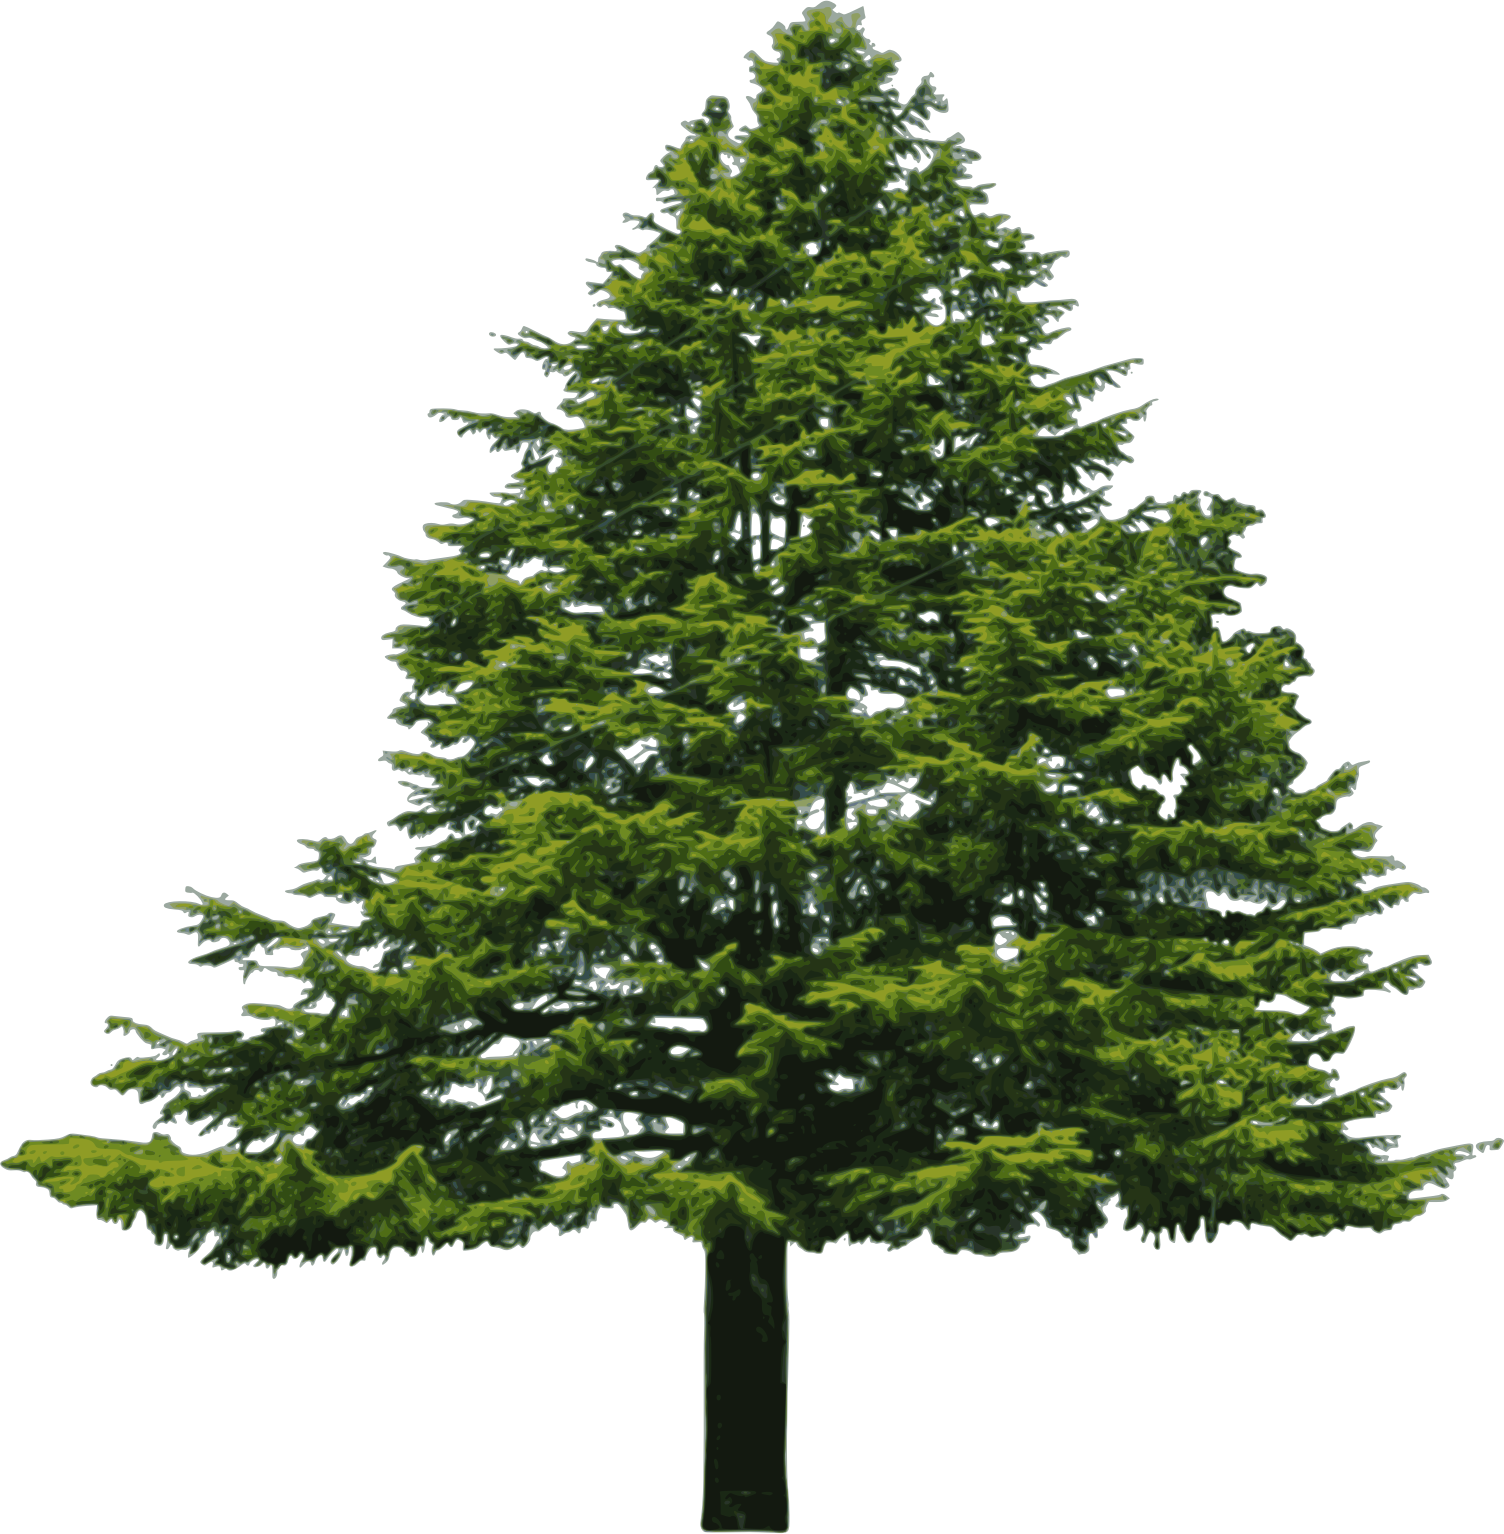 Wide tree transparent images. Forest trees png clip art library stock